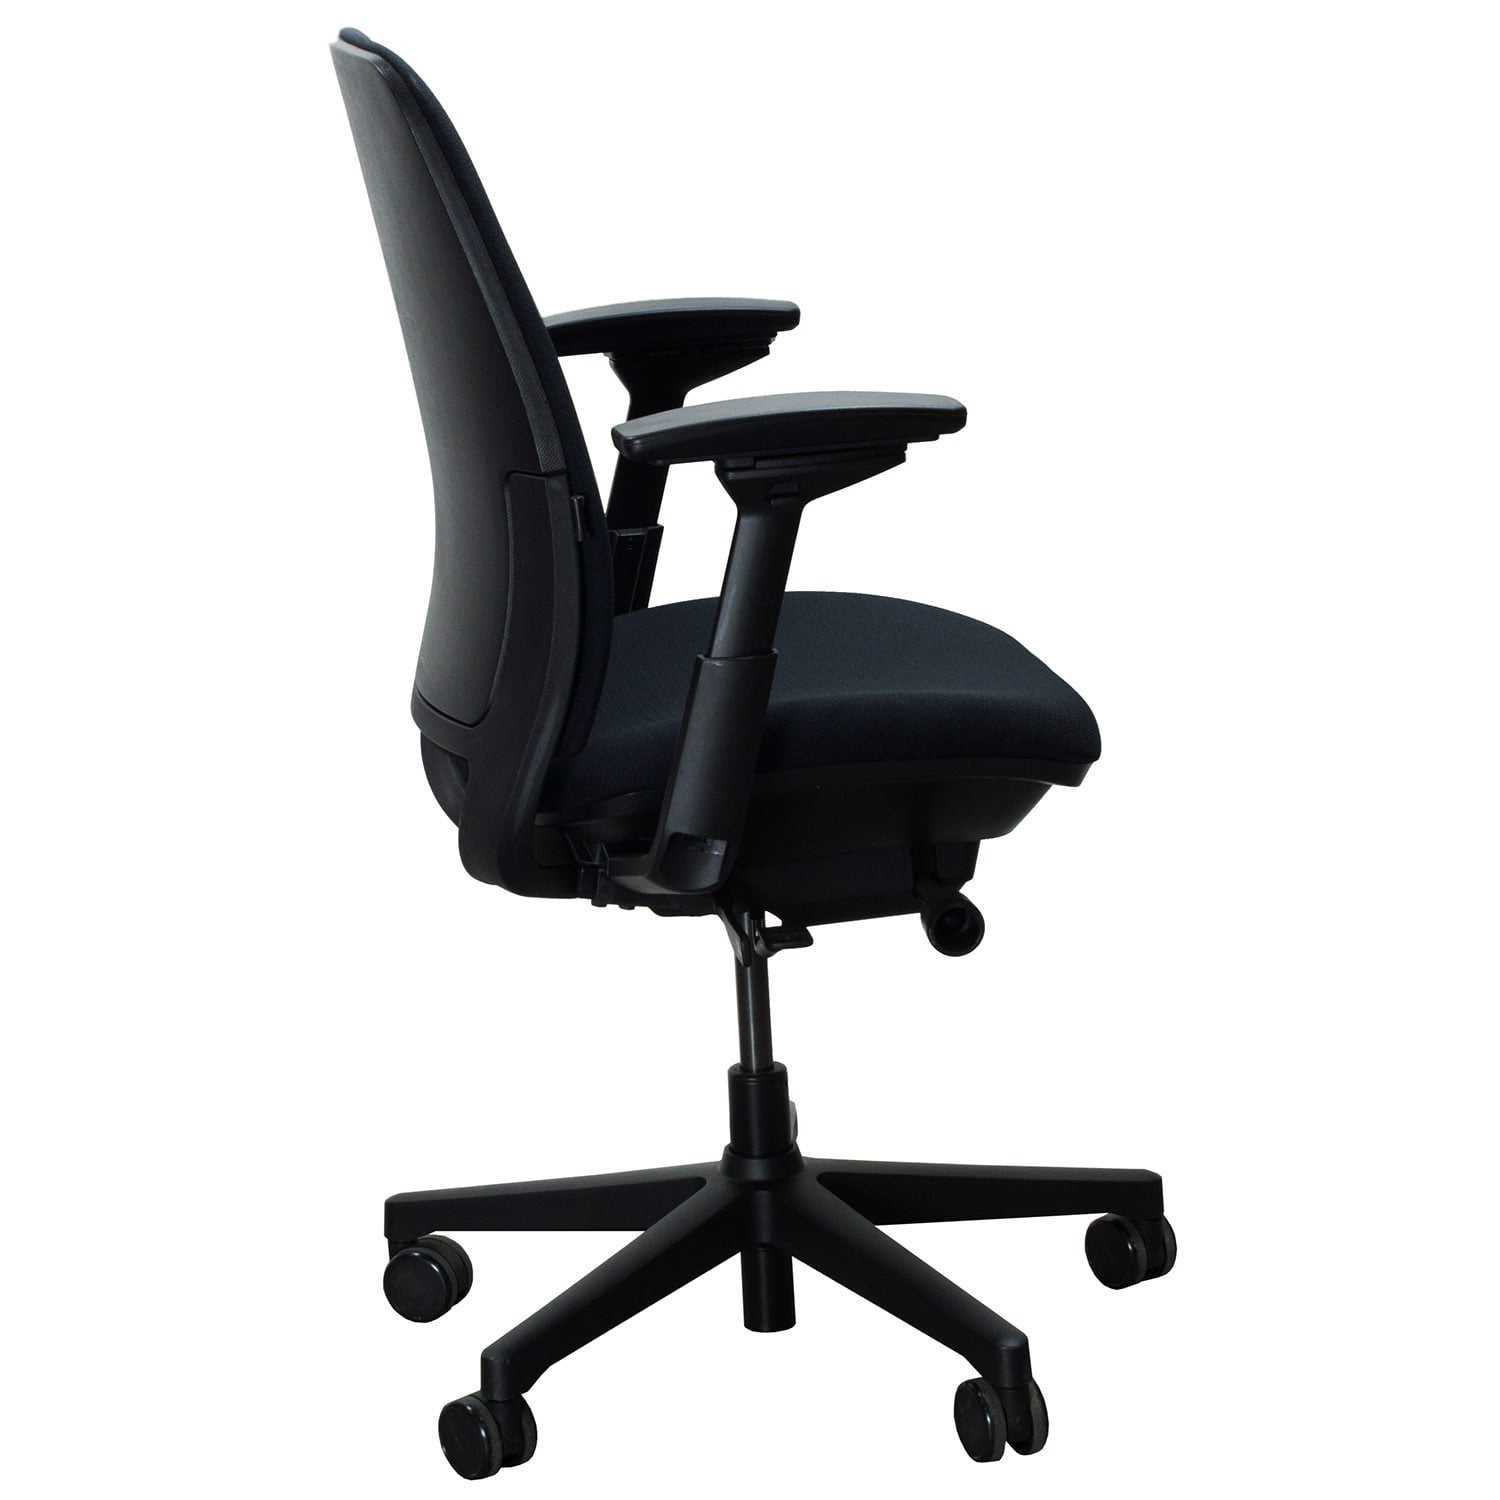 steelcase chair ergonomic drafting canada amia used task black national office interiors